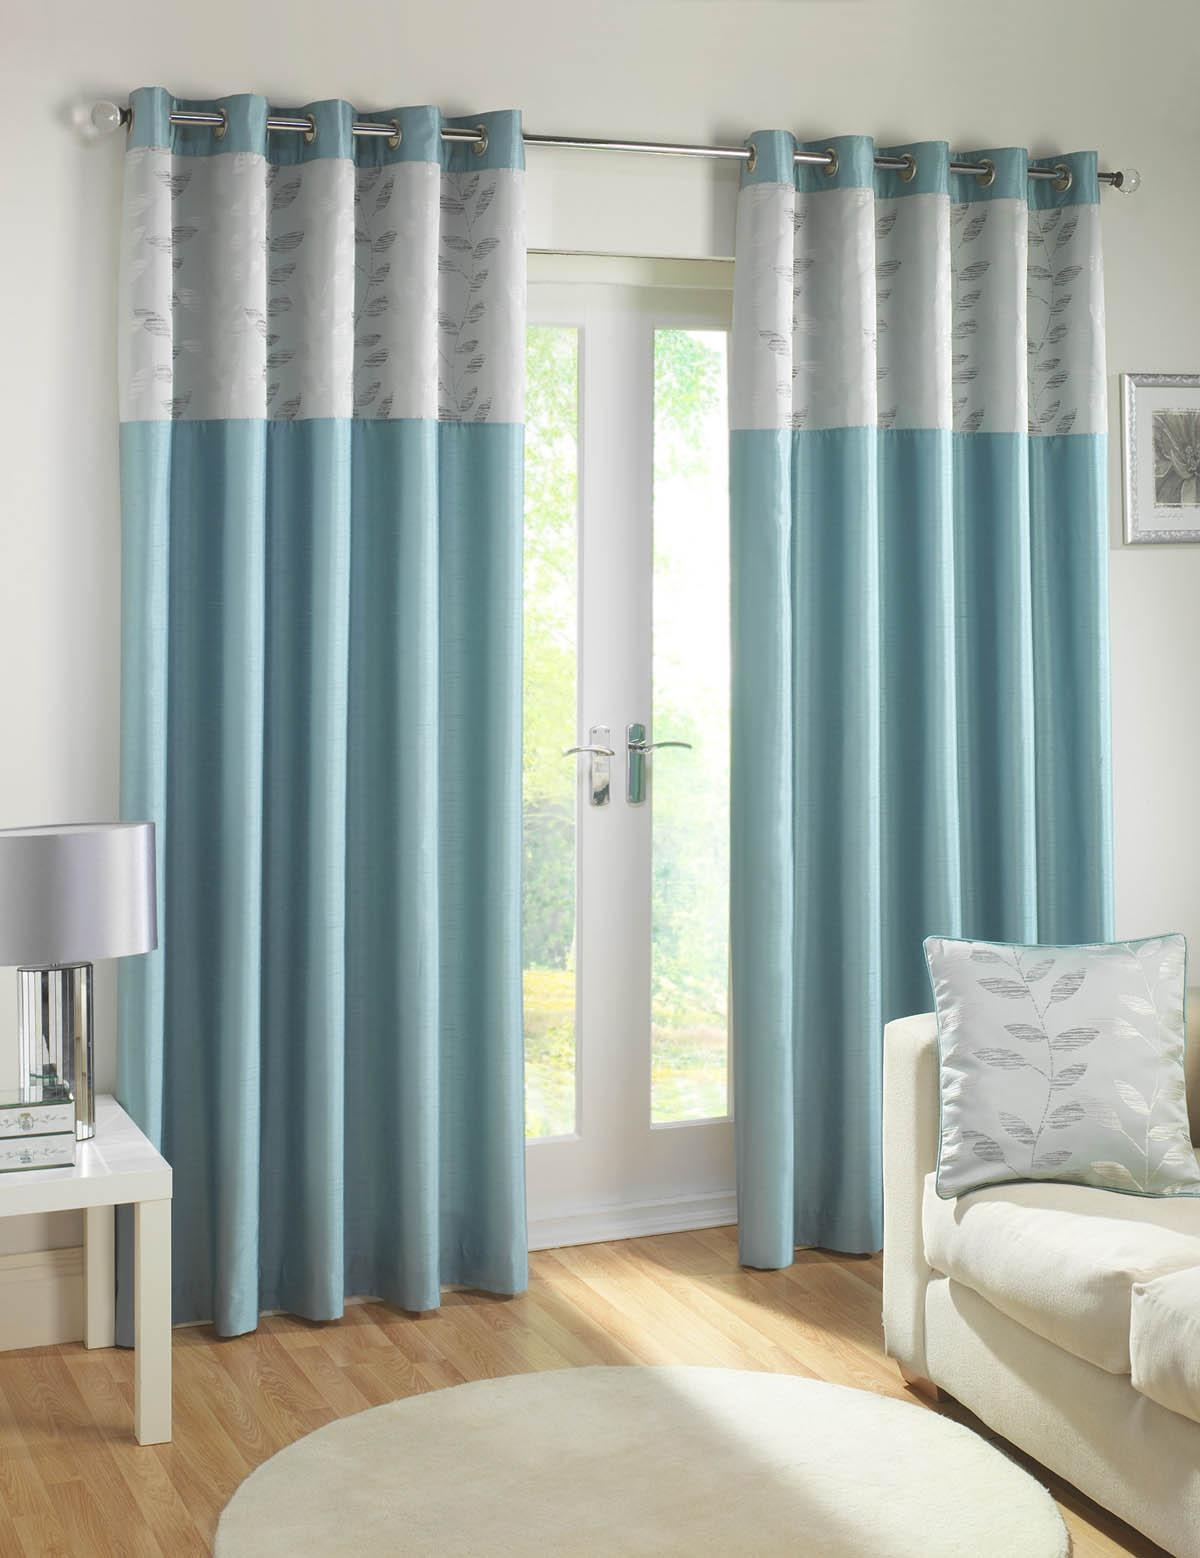 Eden Ready Made Eyelet Curtains Duckegg Free Uk Delivery Intended For Duck Egg Blue Blackout Curtains (View 6 of 15)